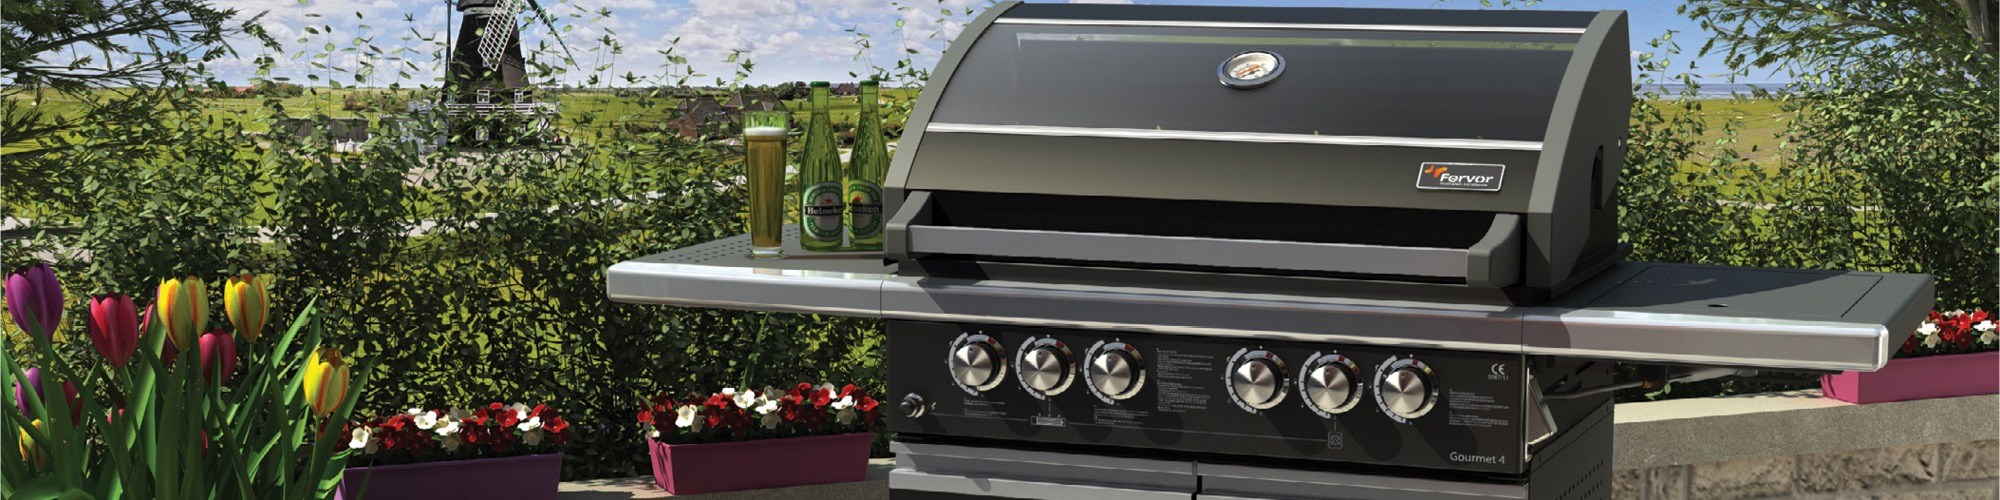 A photo of a barbeque in a country backyard setting.